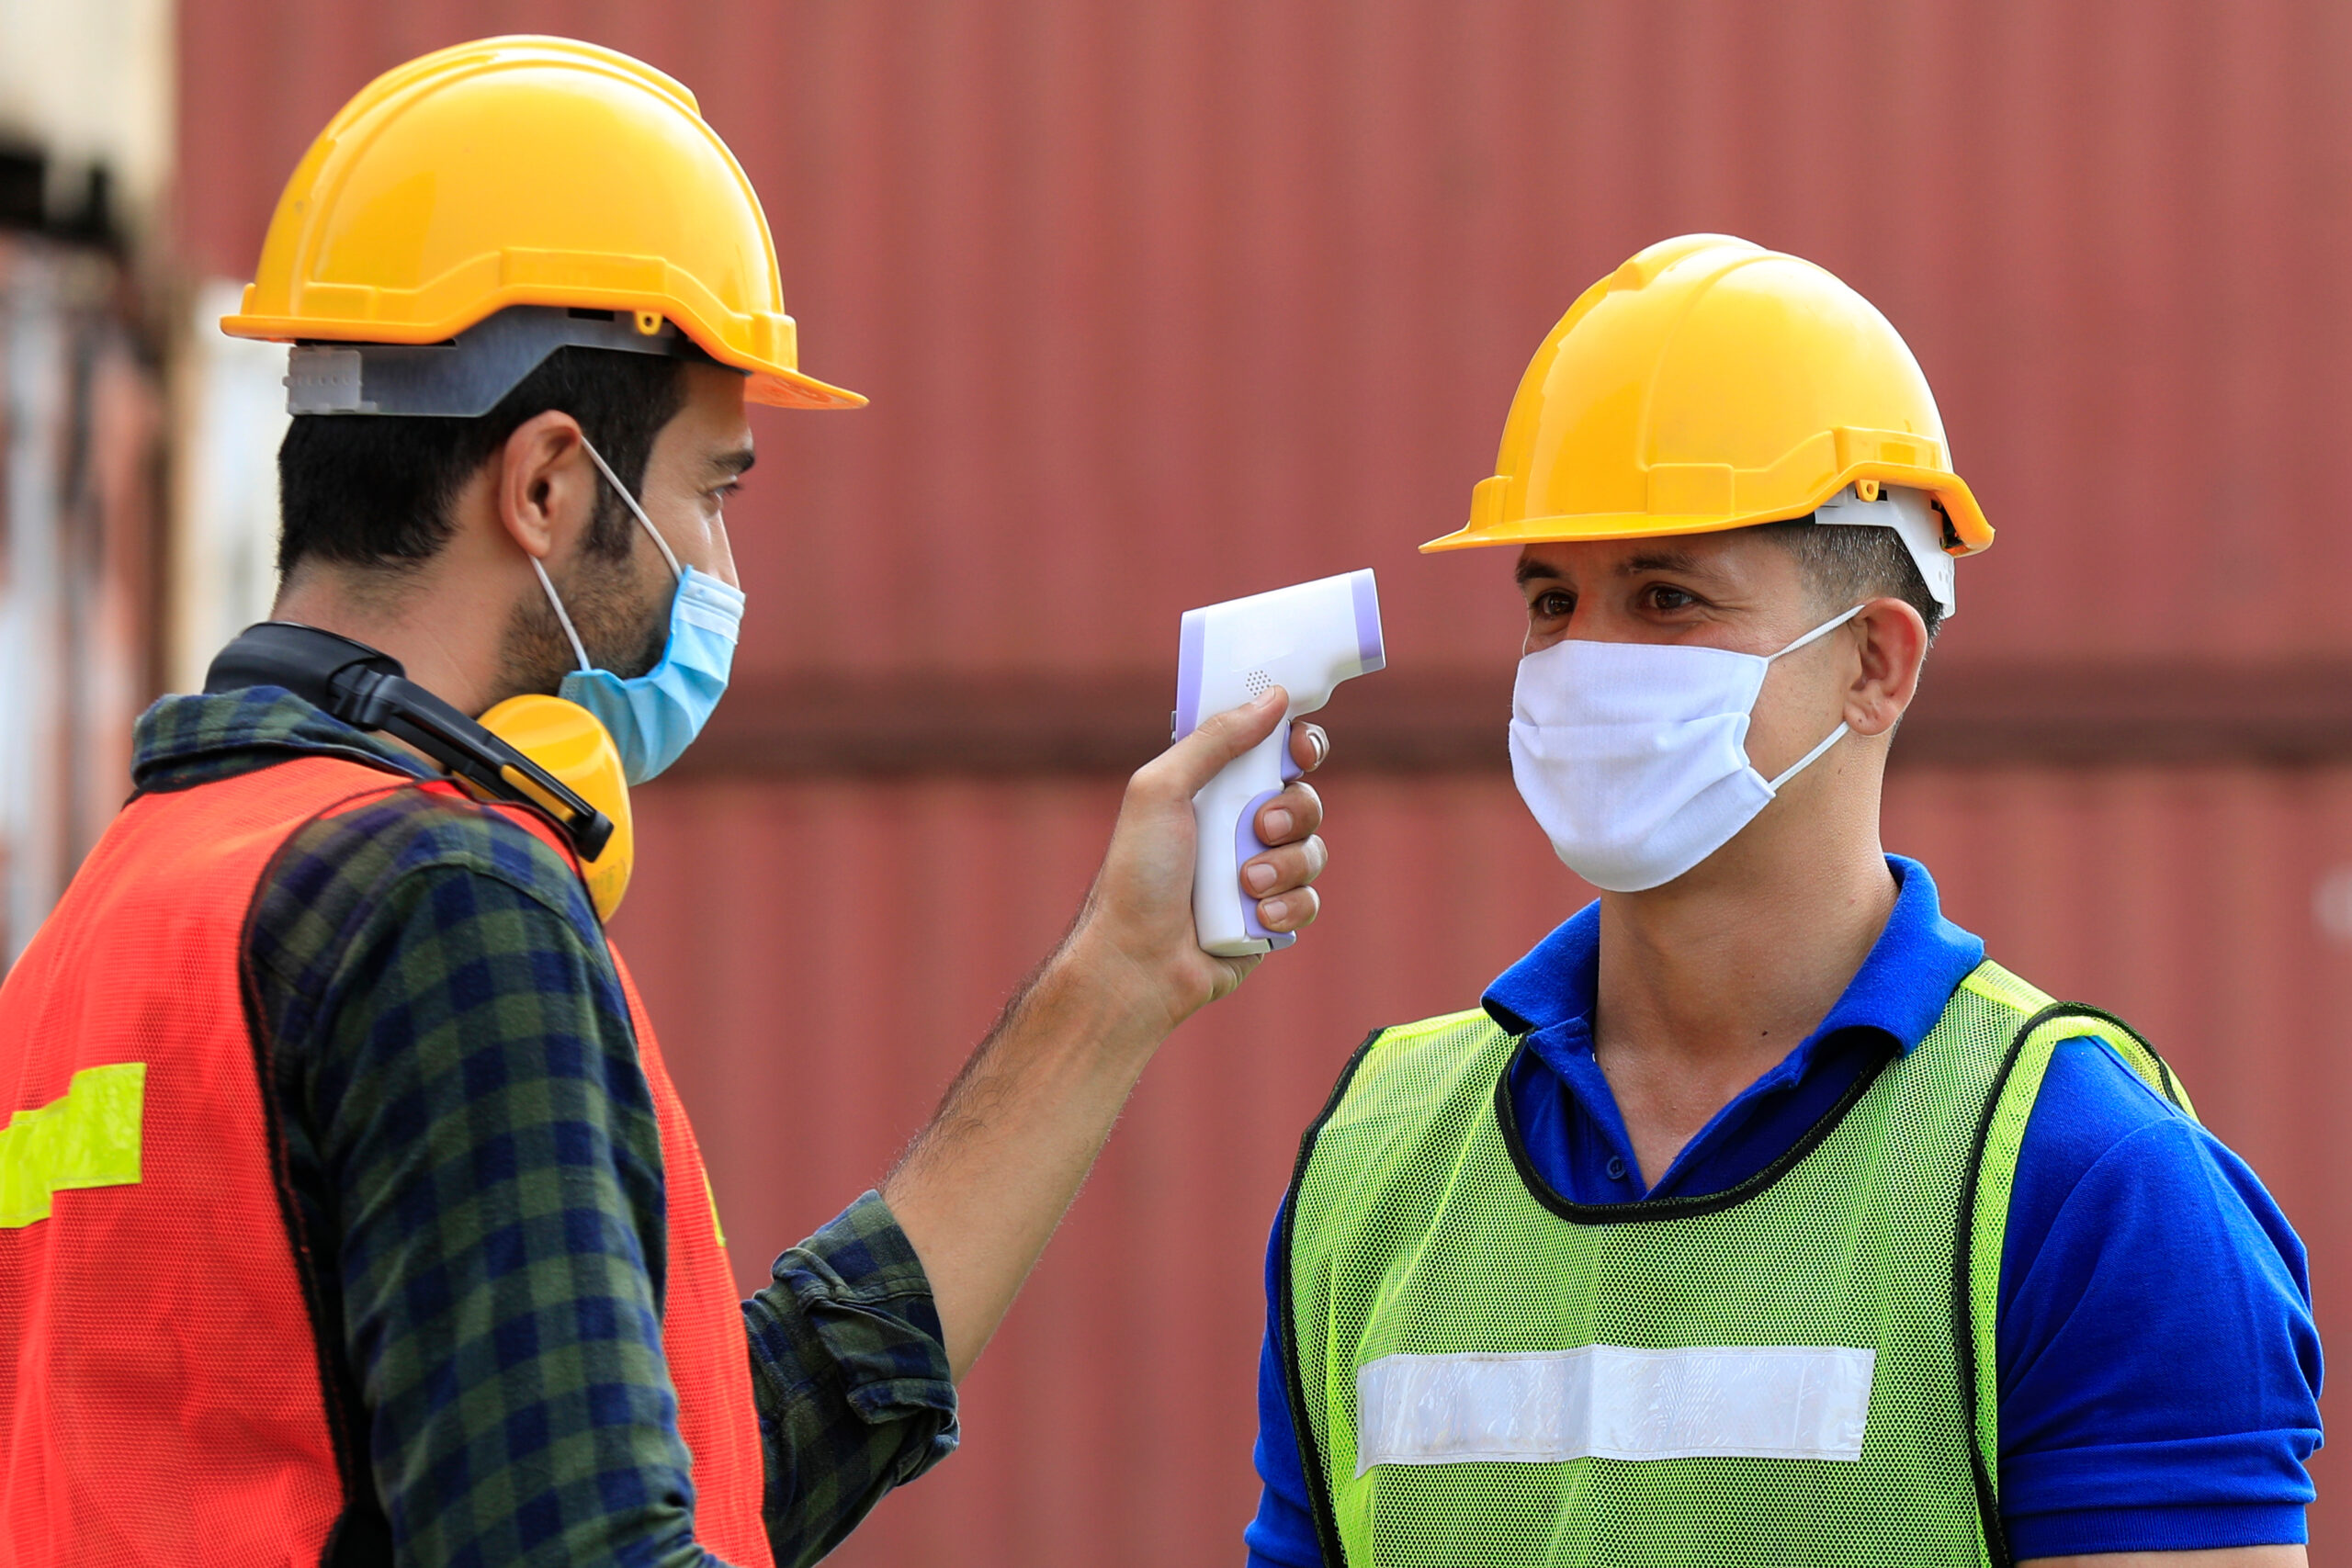 Construction restrictions to lift in NSW, unvaccinated workers permitted to return to work